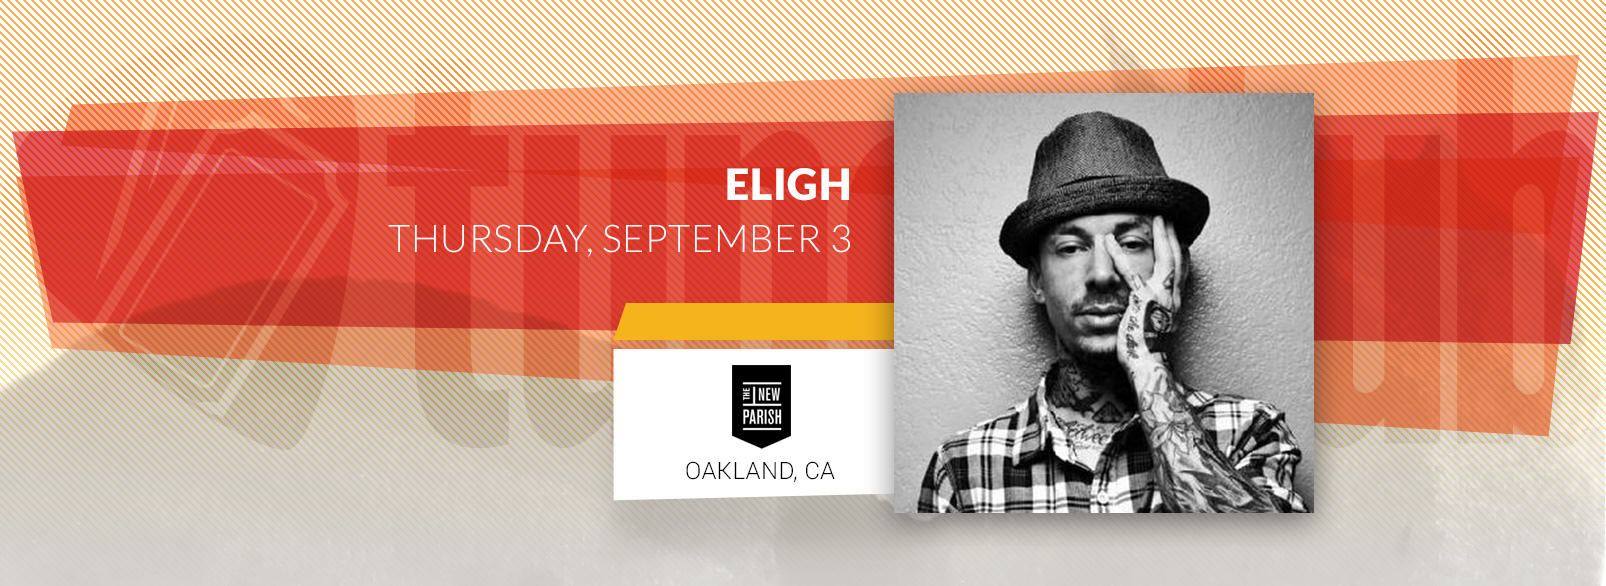 Eligh @ New Parish